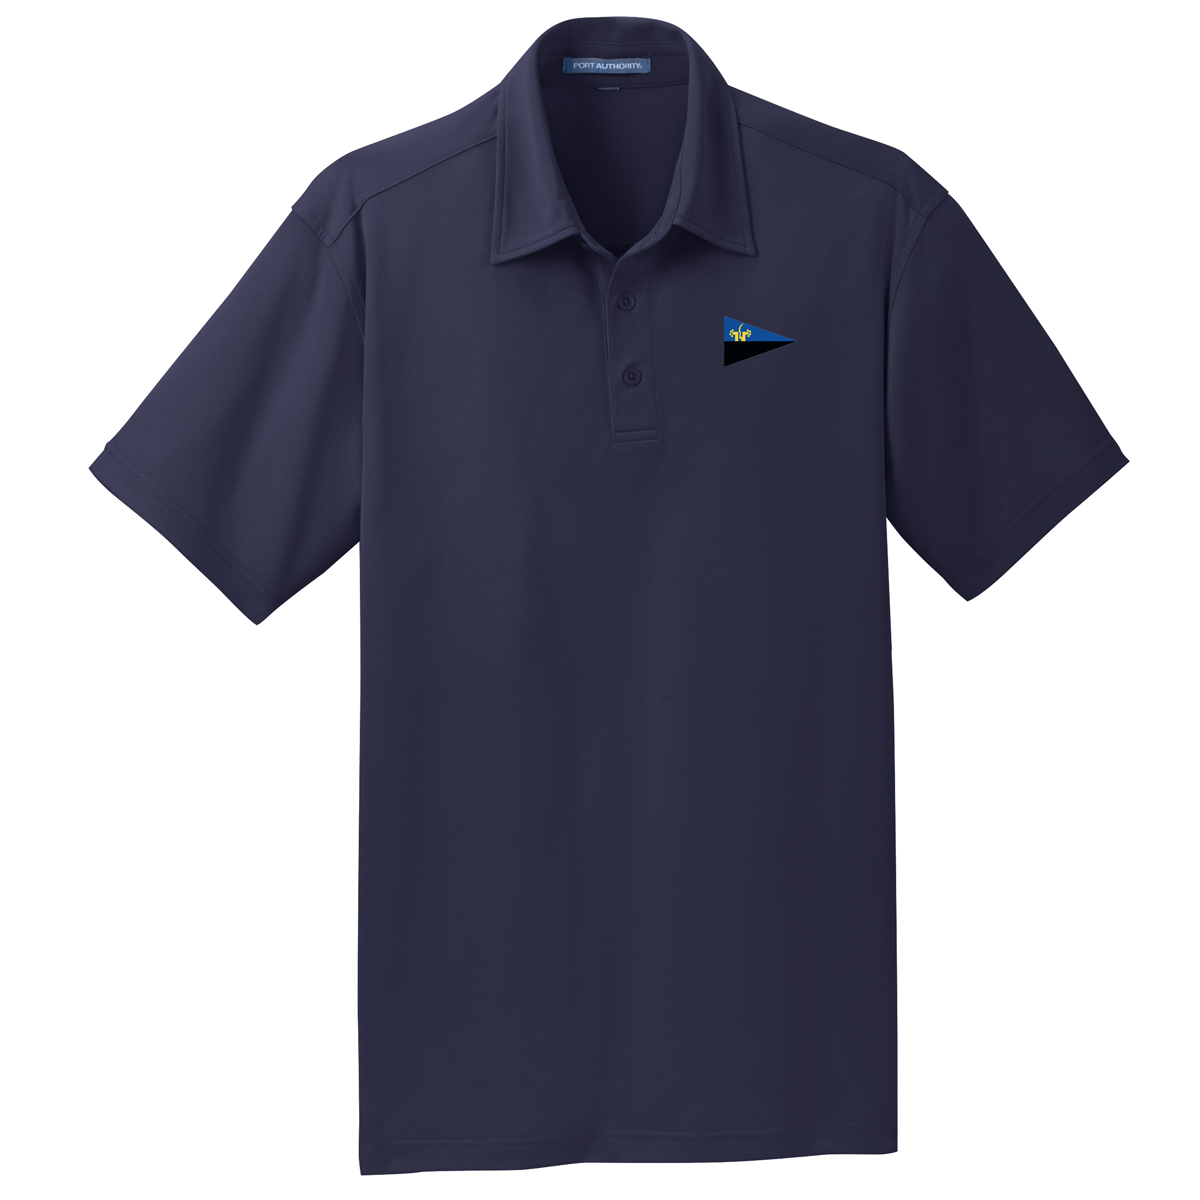 Mudratz M's Tech Polo